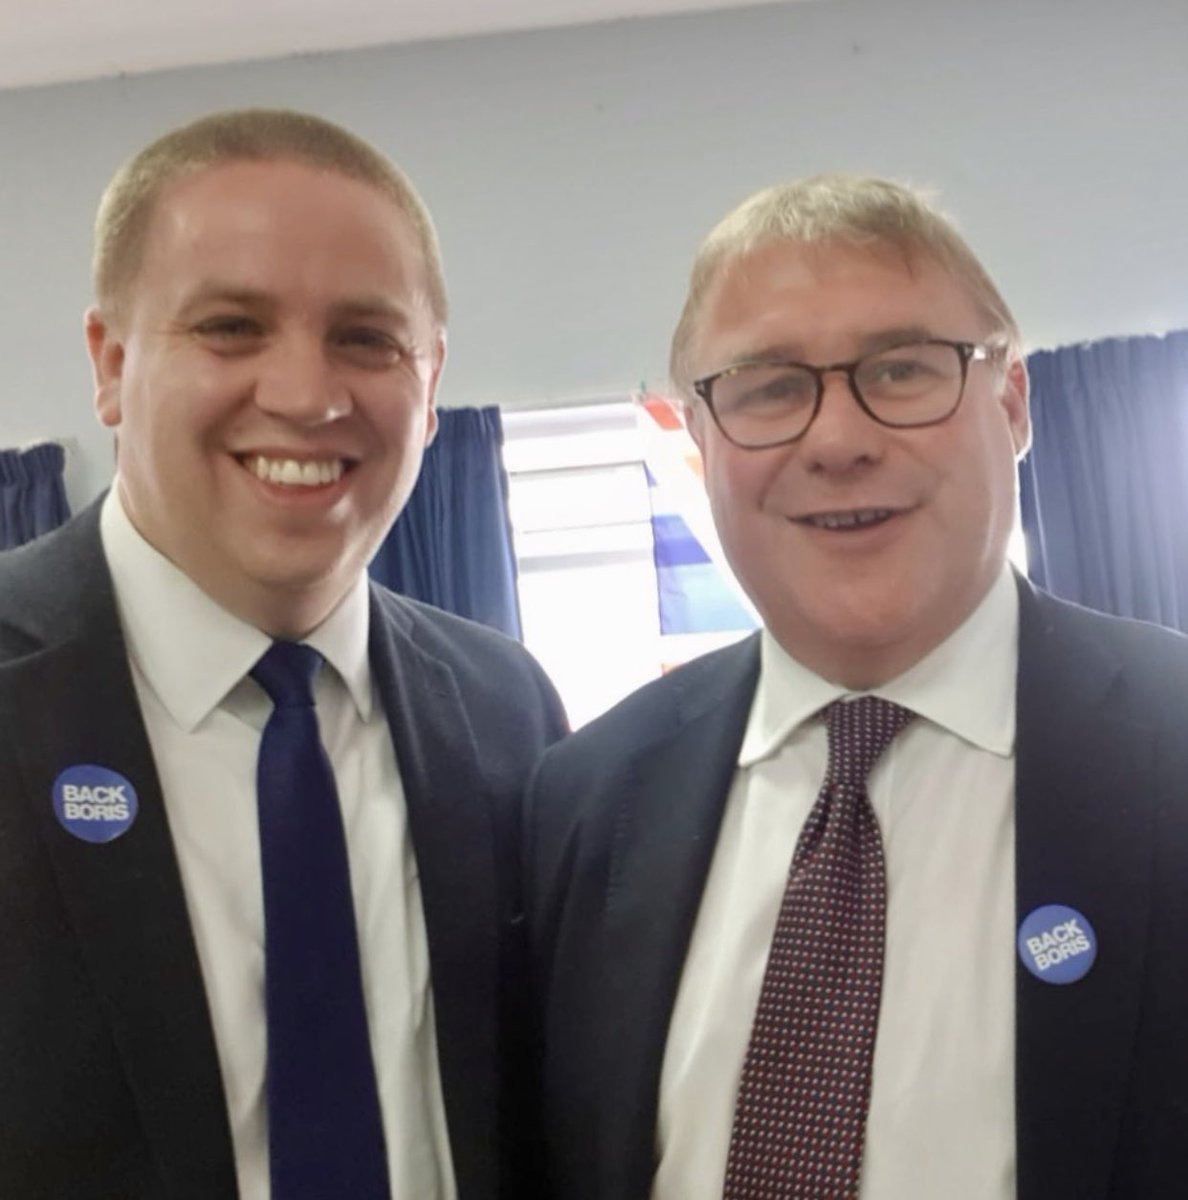 A year ago today... on the #BackBoris campaign trail with Jacob Rees-Mogg, Mark Francois and Sir David Amess!   A lot has happend since then.... <br>http://pic.twitter.com/f3OMpL5aYe